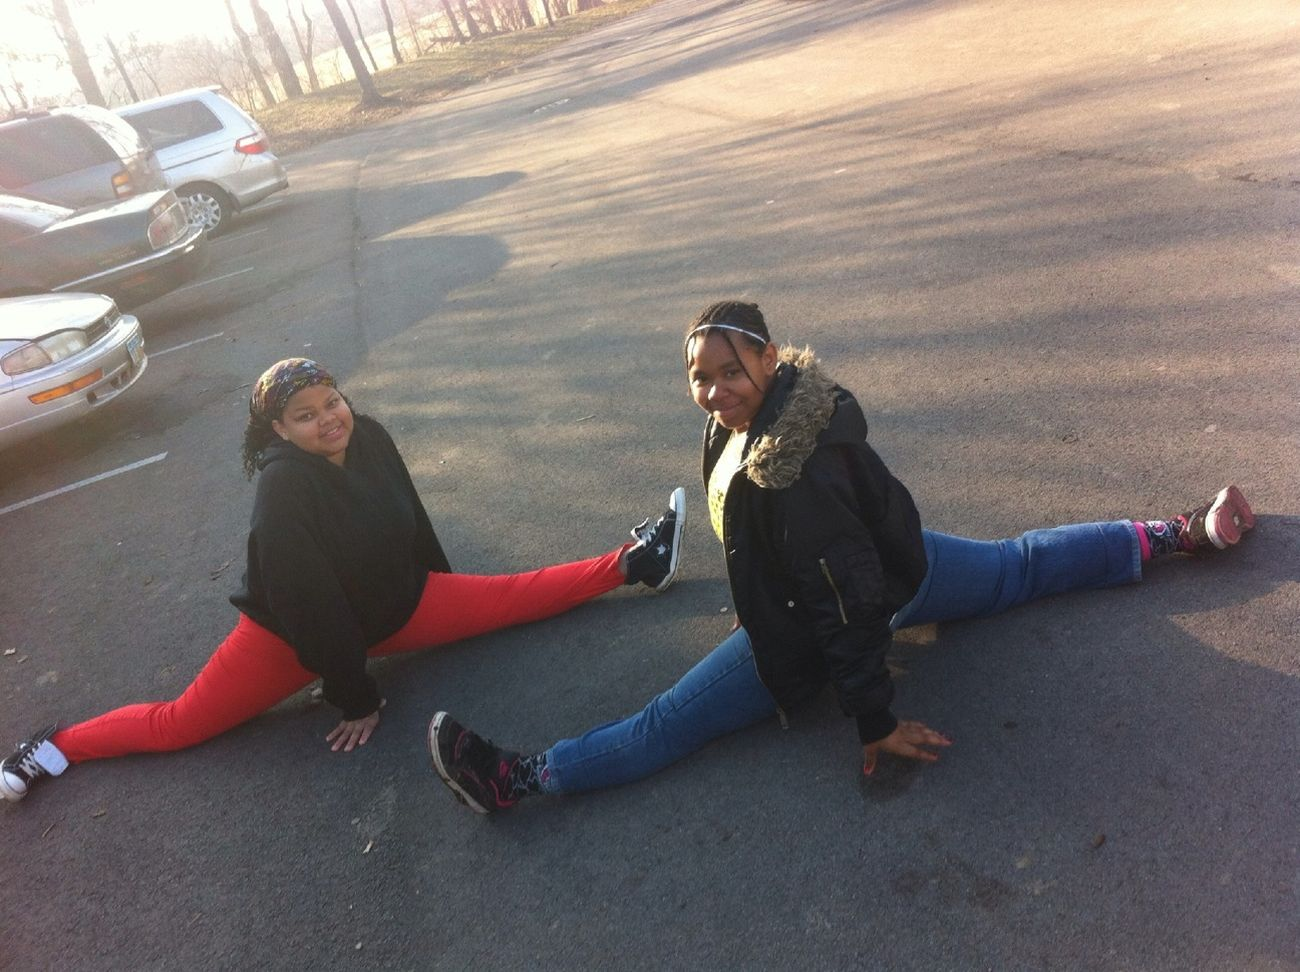 Mii And Mi Lil Youngin Doin Da Splits Lol